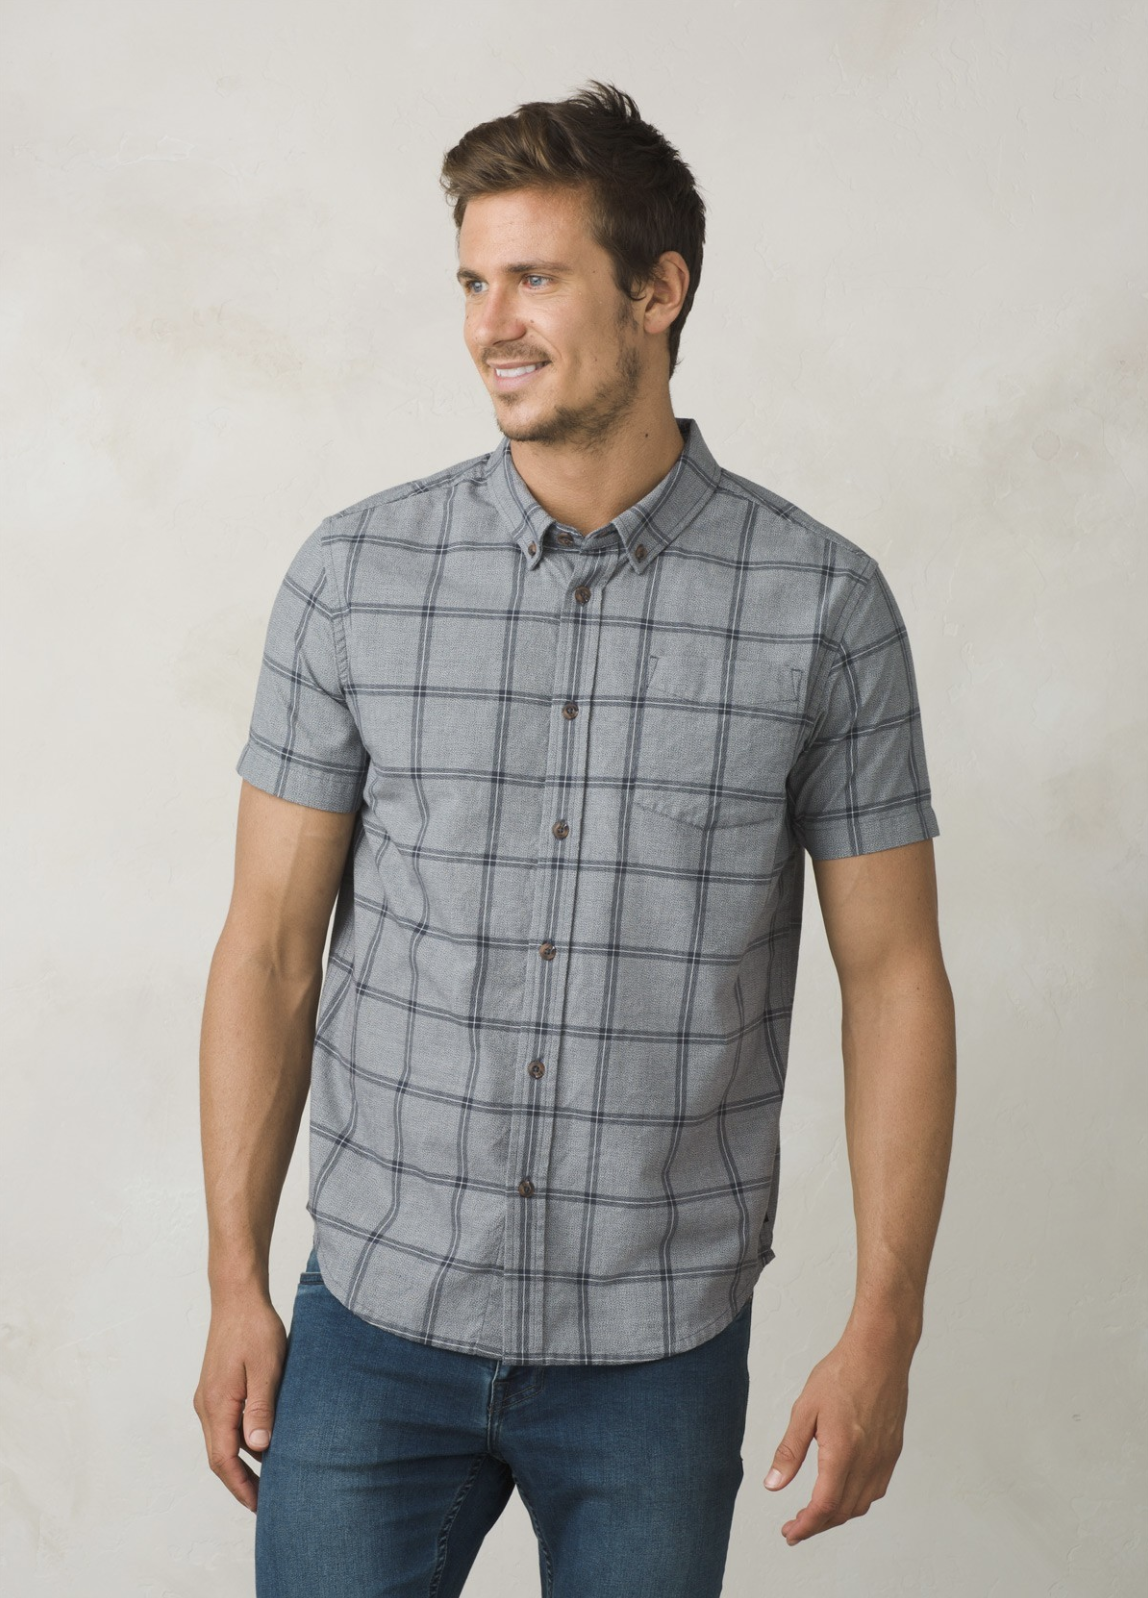 Image via Prana | Eco Friendly Father's Day Gifts | Sustainable Fashion Guide by Conscious Fashion Collective